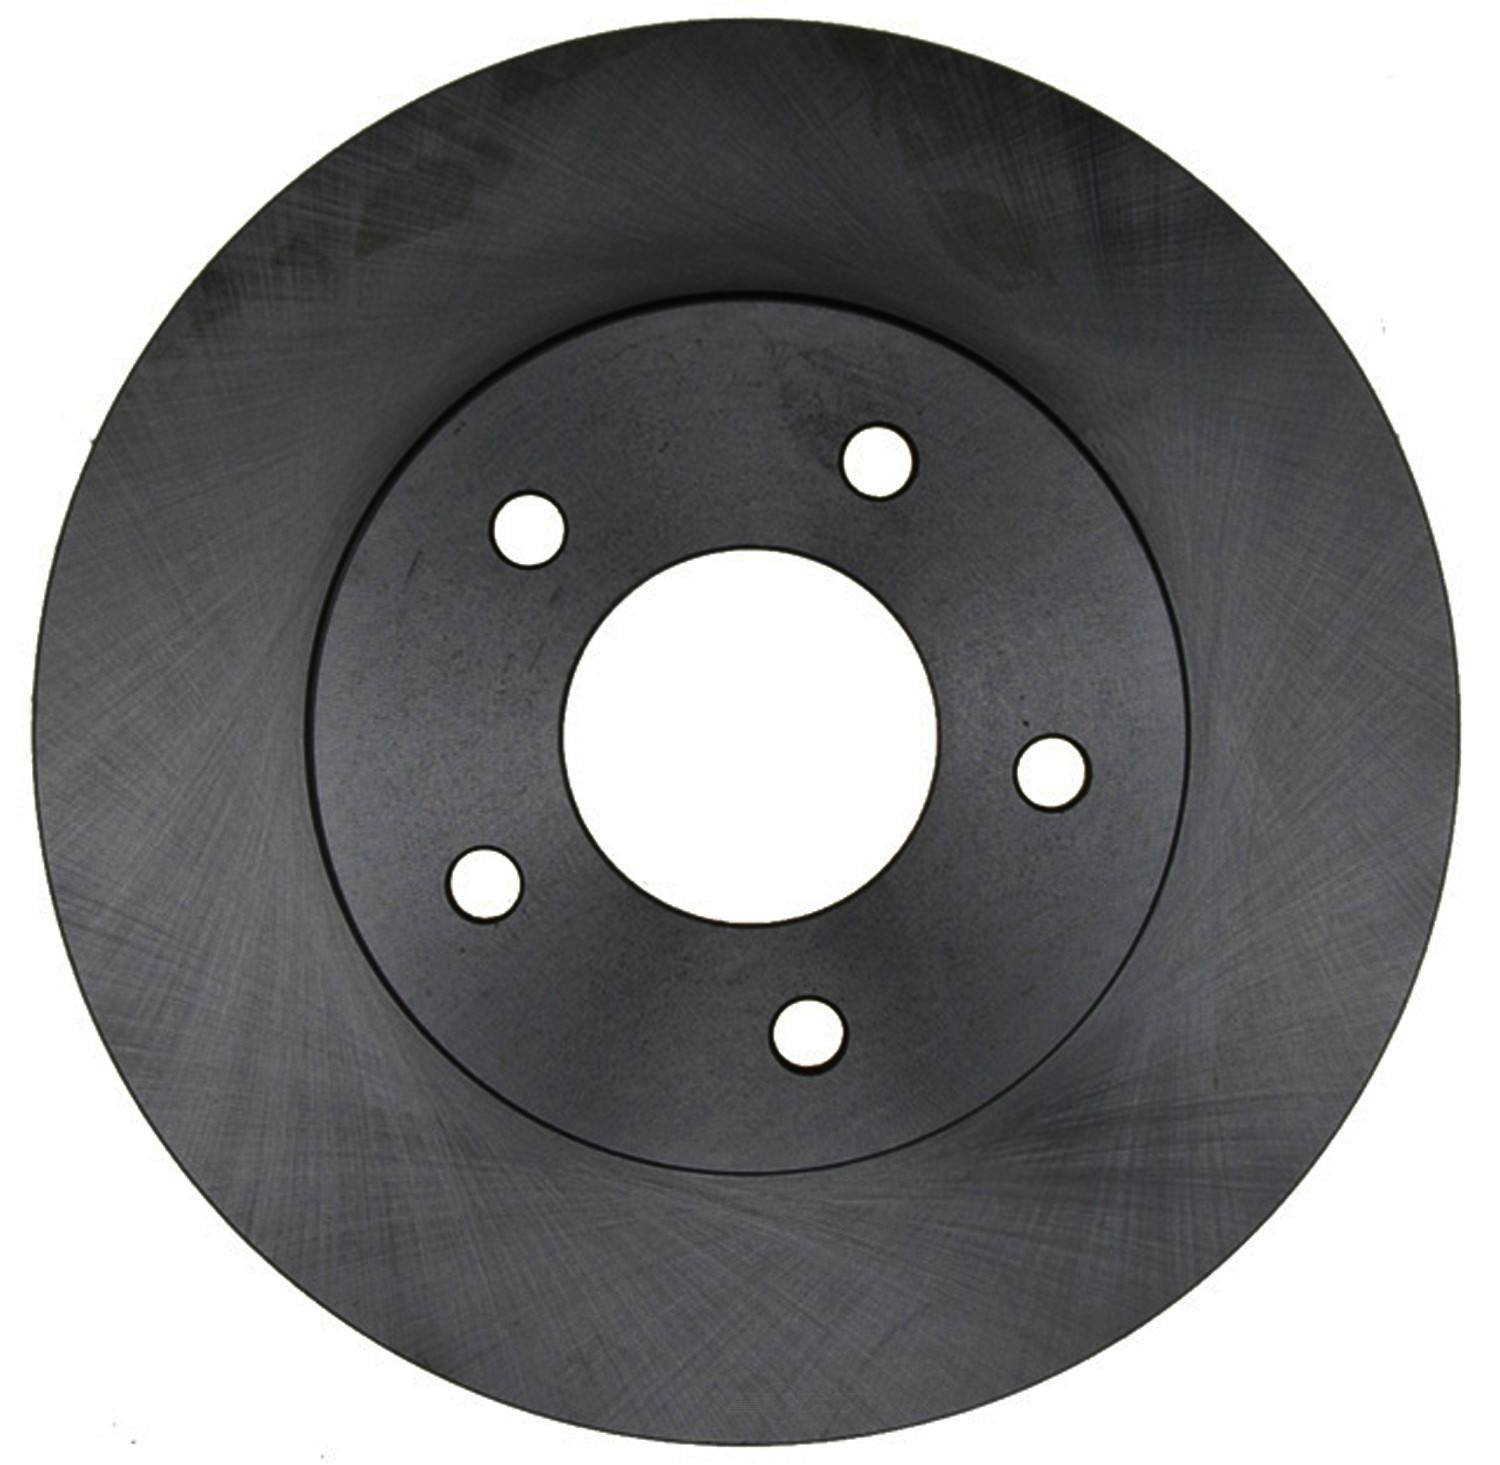 ACDELCO ADVANTAGE - Non-Coated Disc Brake Rotor - DCD 18A659A